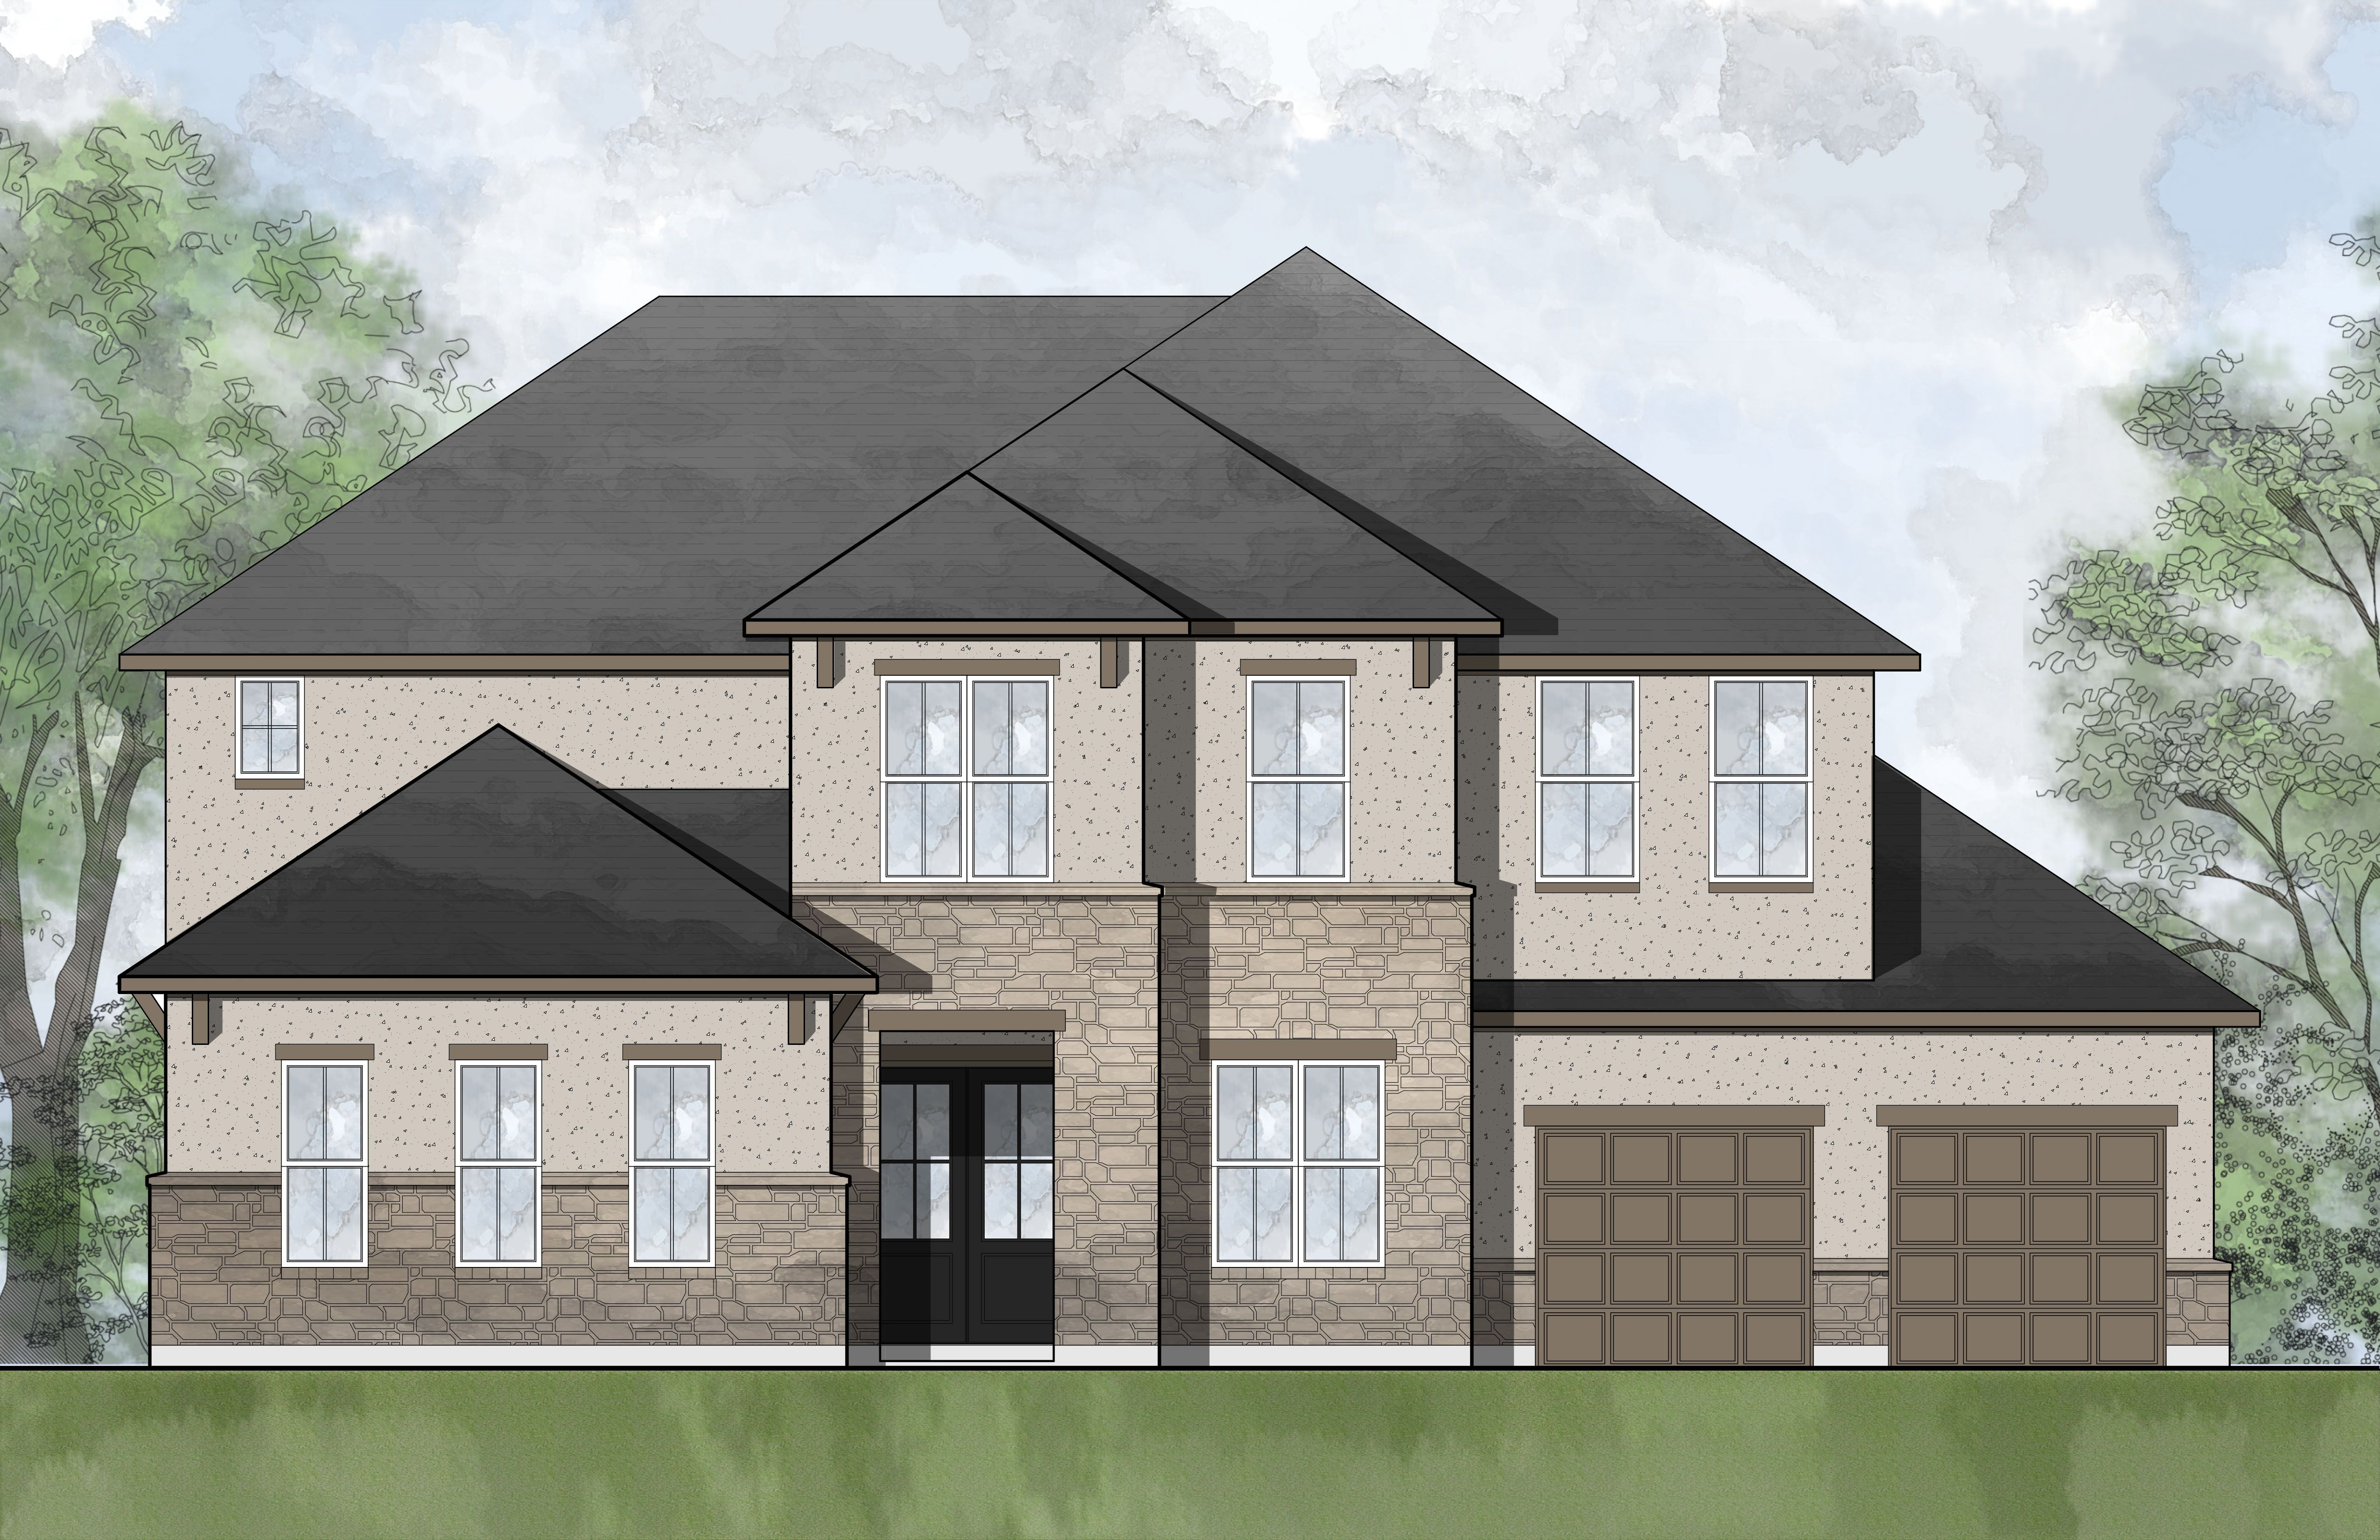 Single Family for Active at Briargate 10230 Delta Court Iowa Colony, Texas 77583 United States